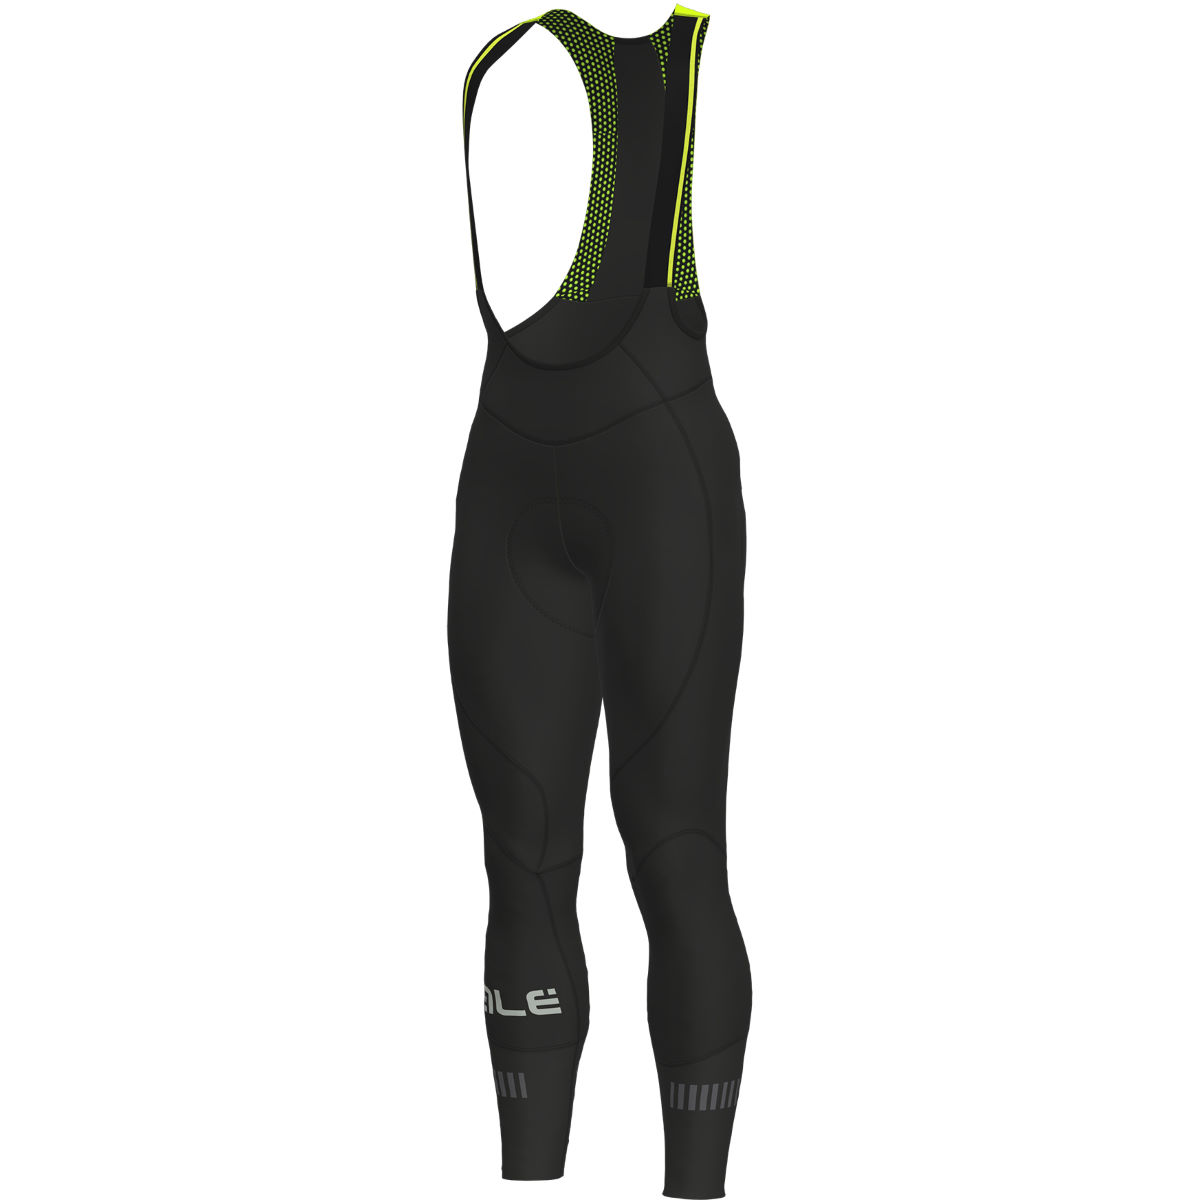 Alé Clima Protection 2.0 Be-Hot Bib Tights - Mallas